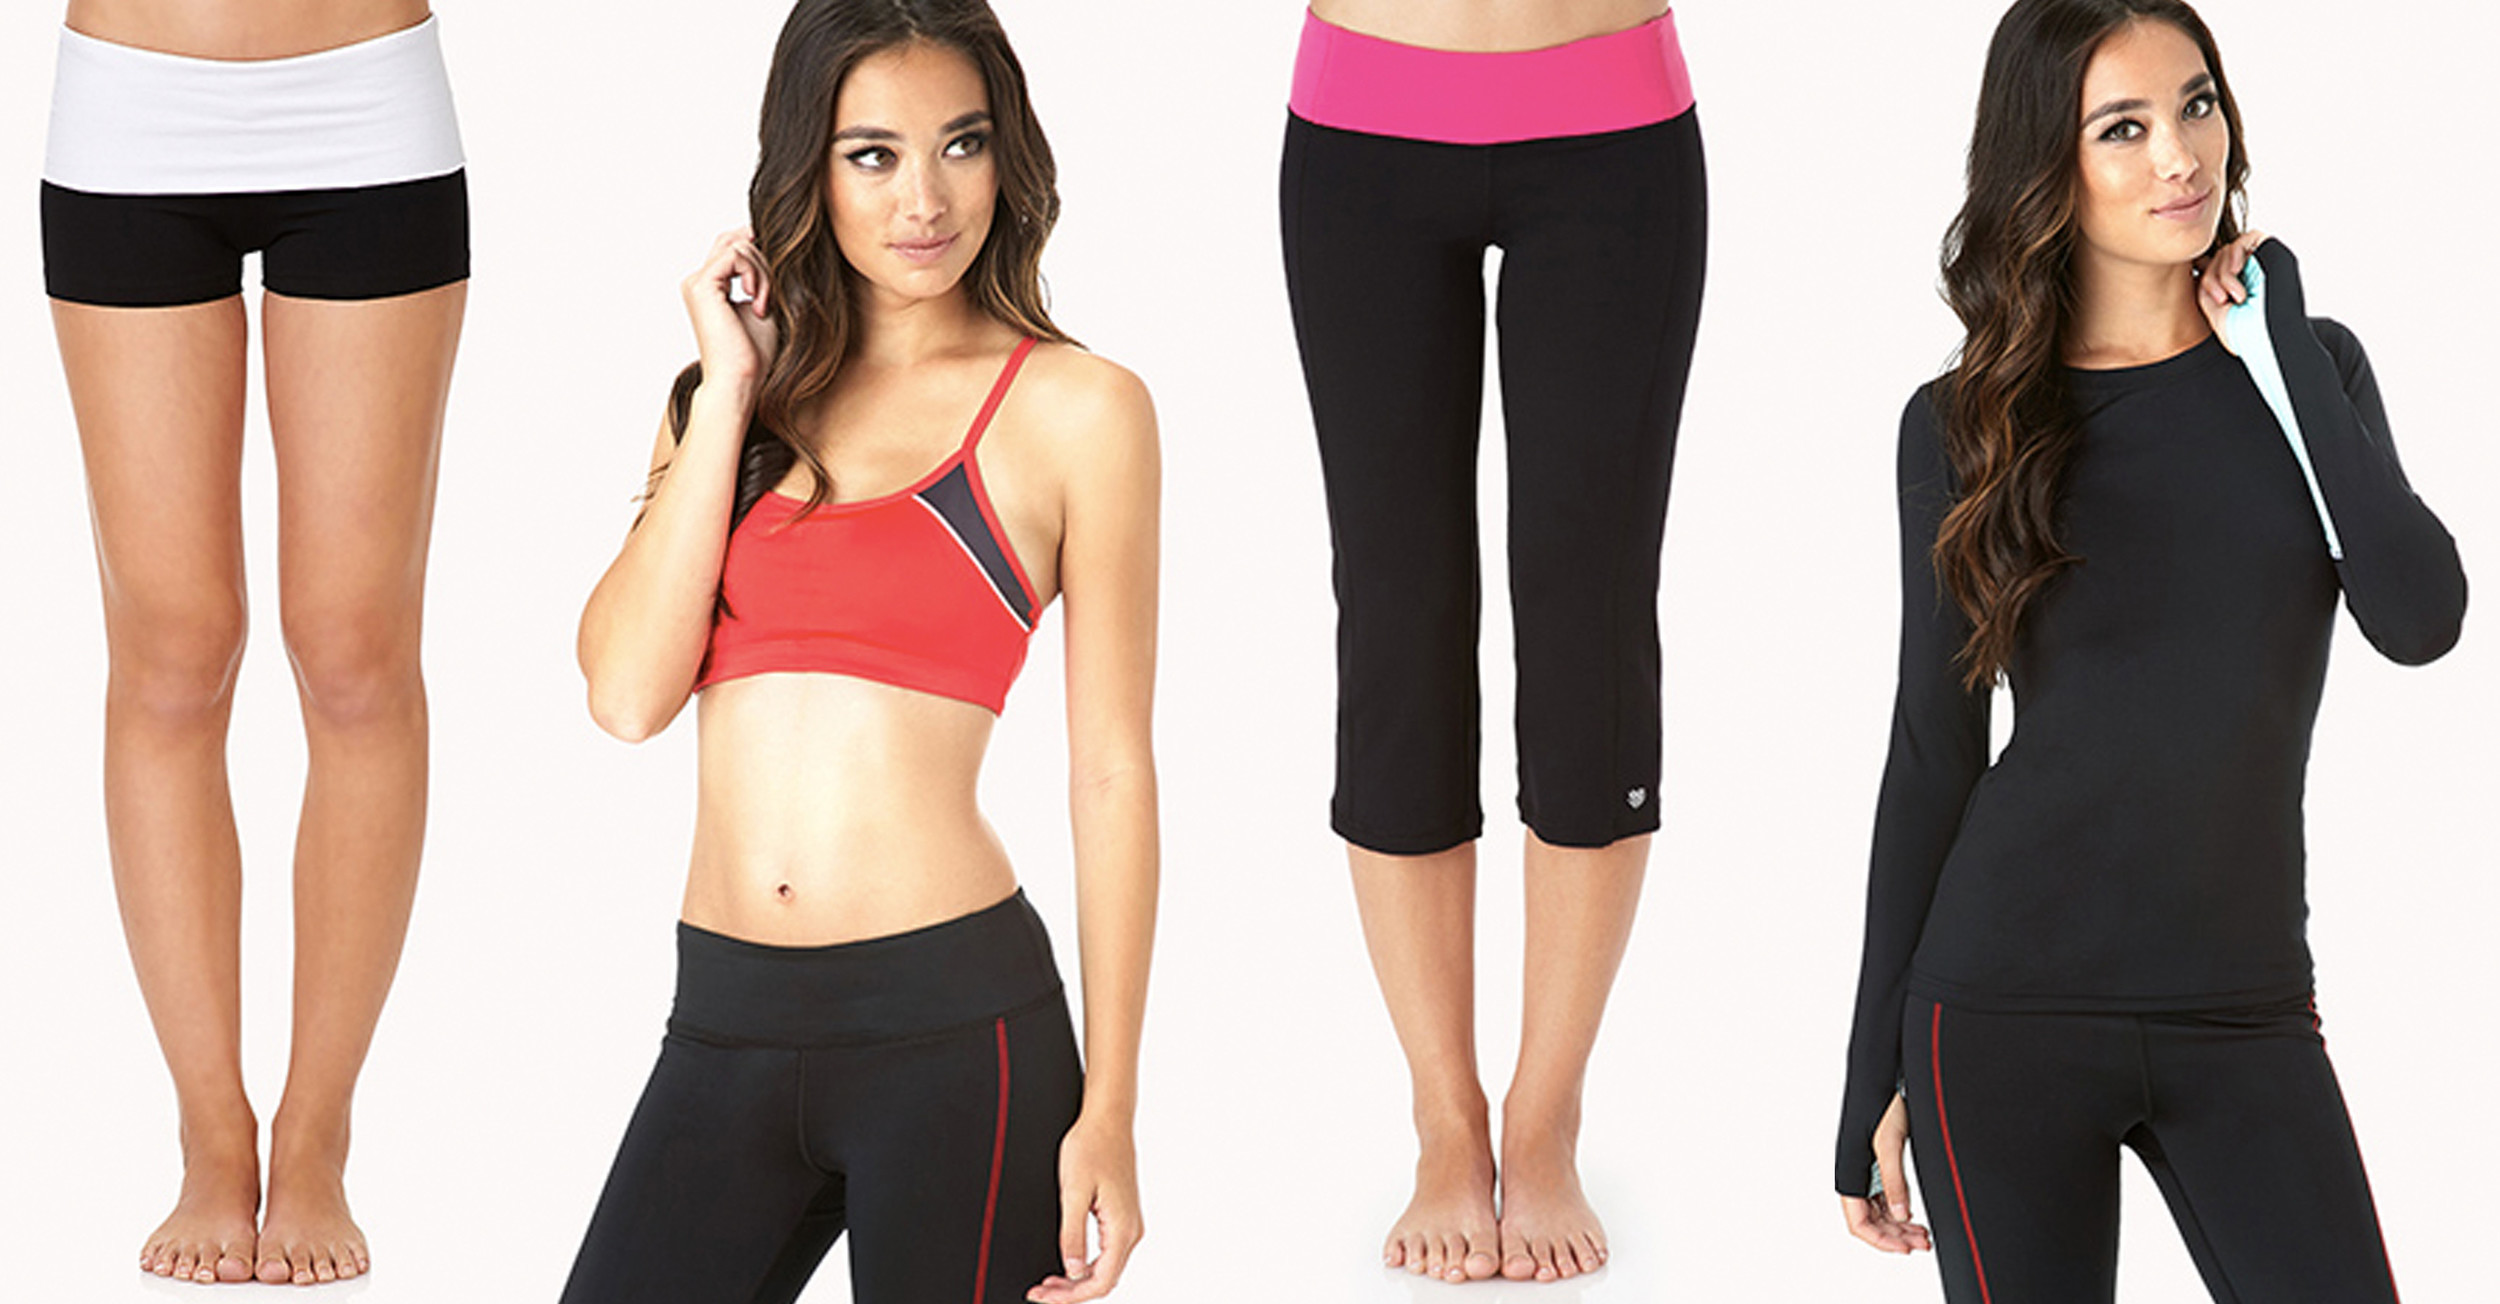 forever21. Colorblocked Running Top, $17; Low Impact Sports Bra, $13; Contrast Foldover Yoga Shorts, $6; Cinched Workout Capris, $17